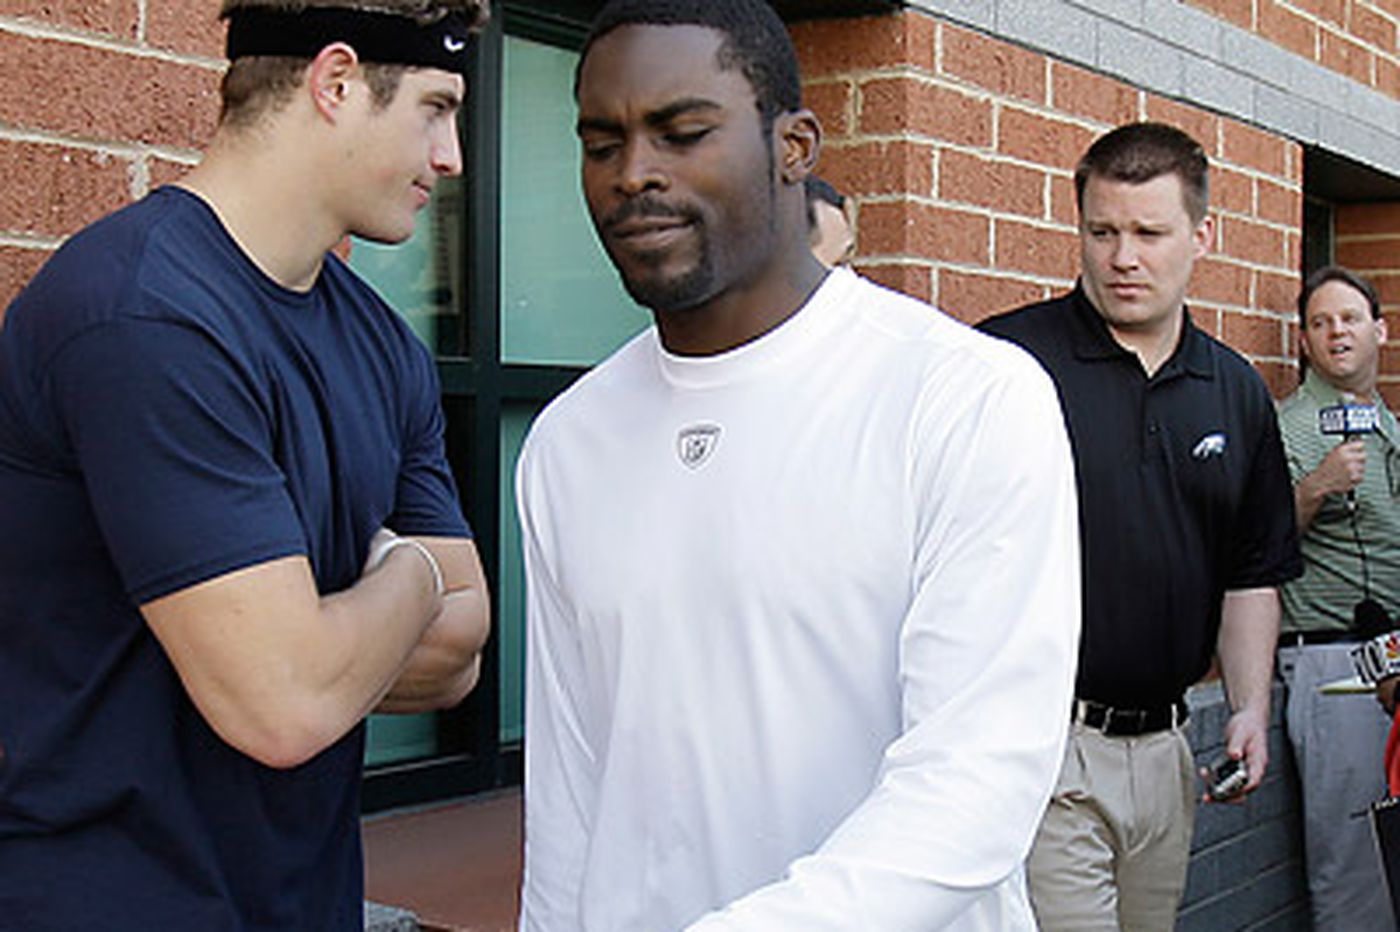 Surveillance video said to dispute Vick's story